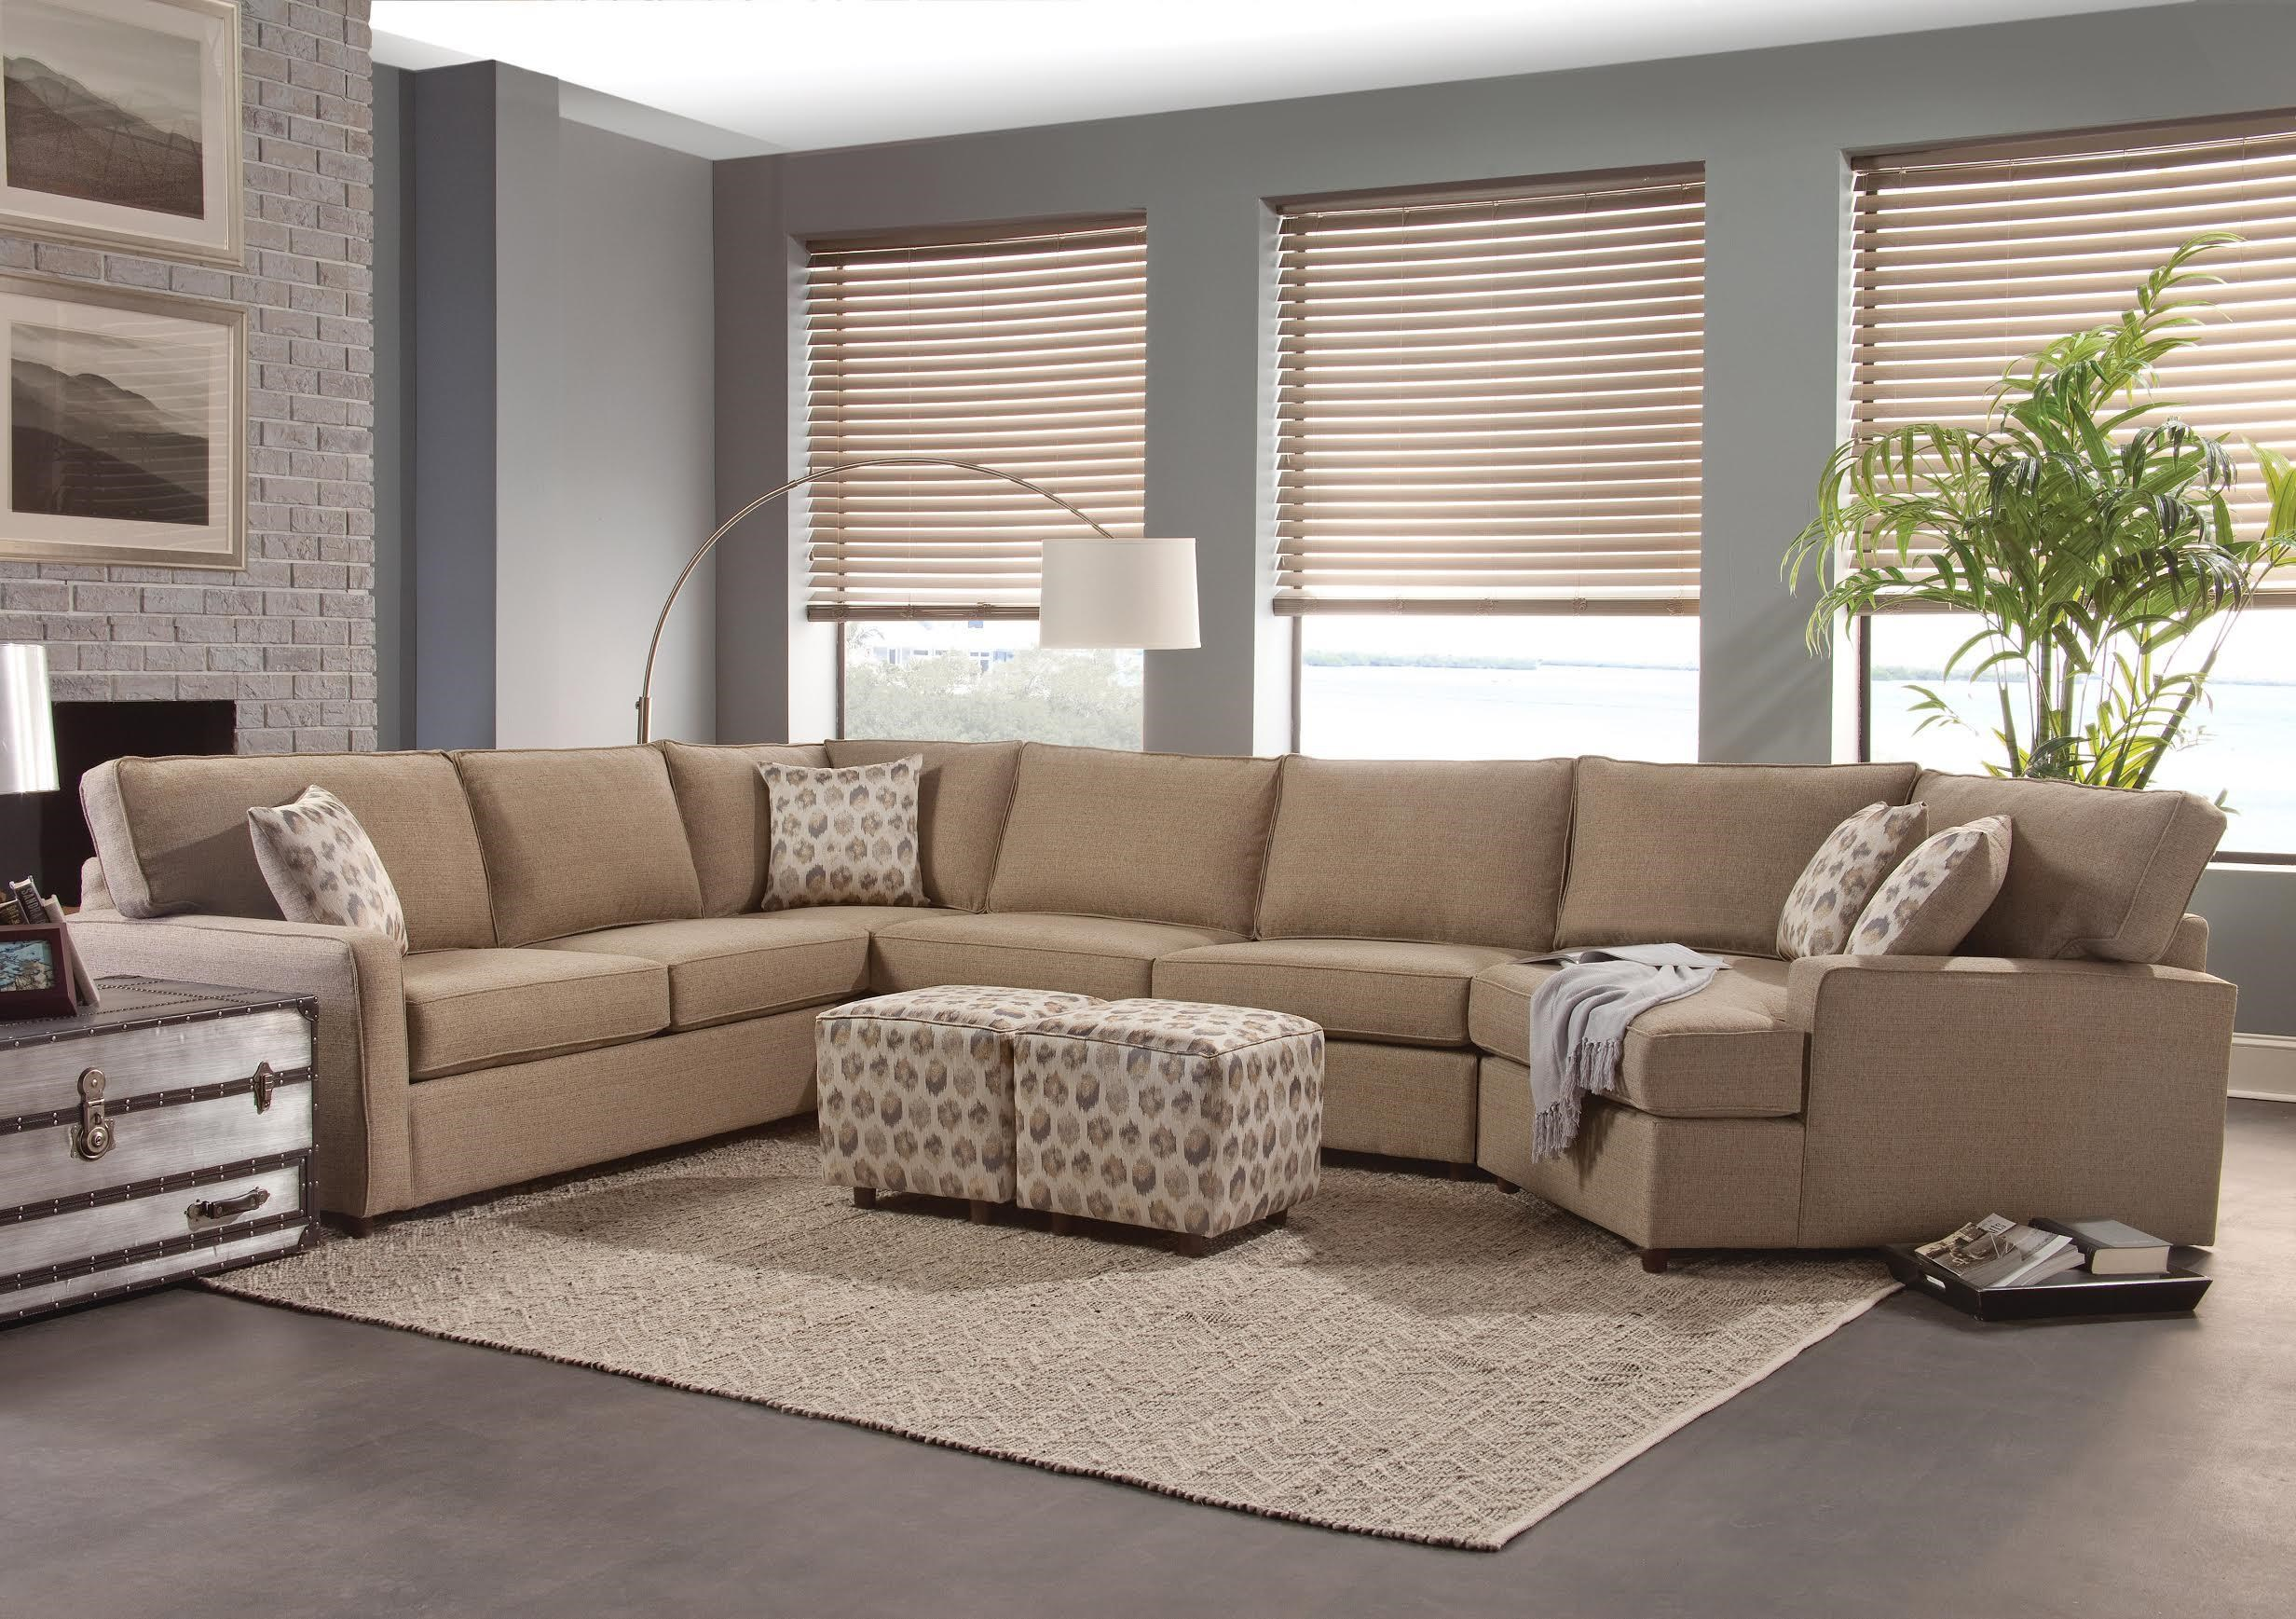 Awesome Belfort Essentials Eliot Transitional Sectional Sofa